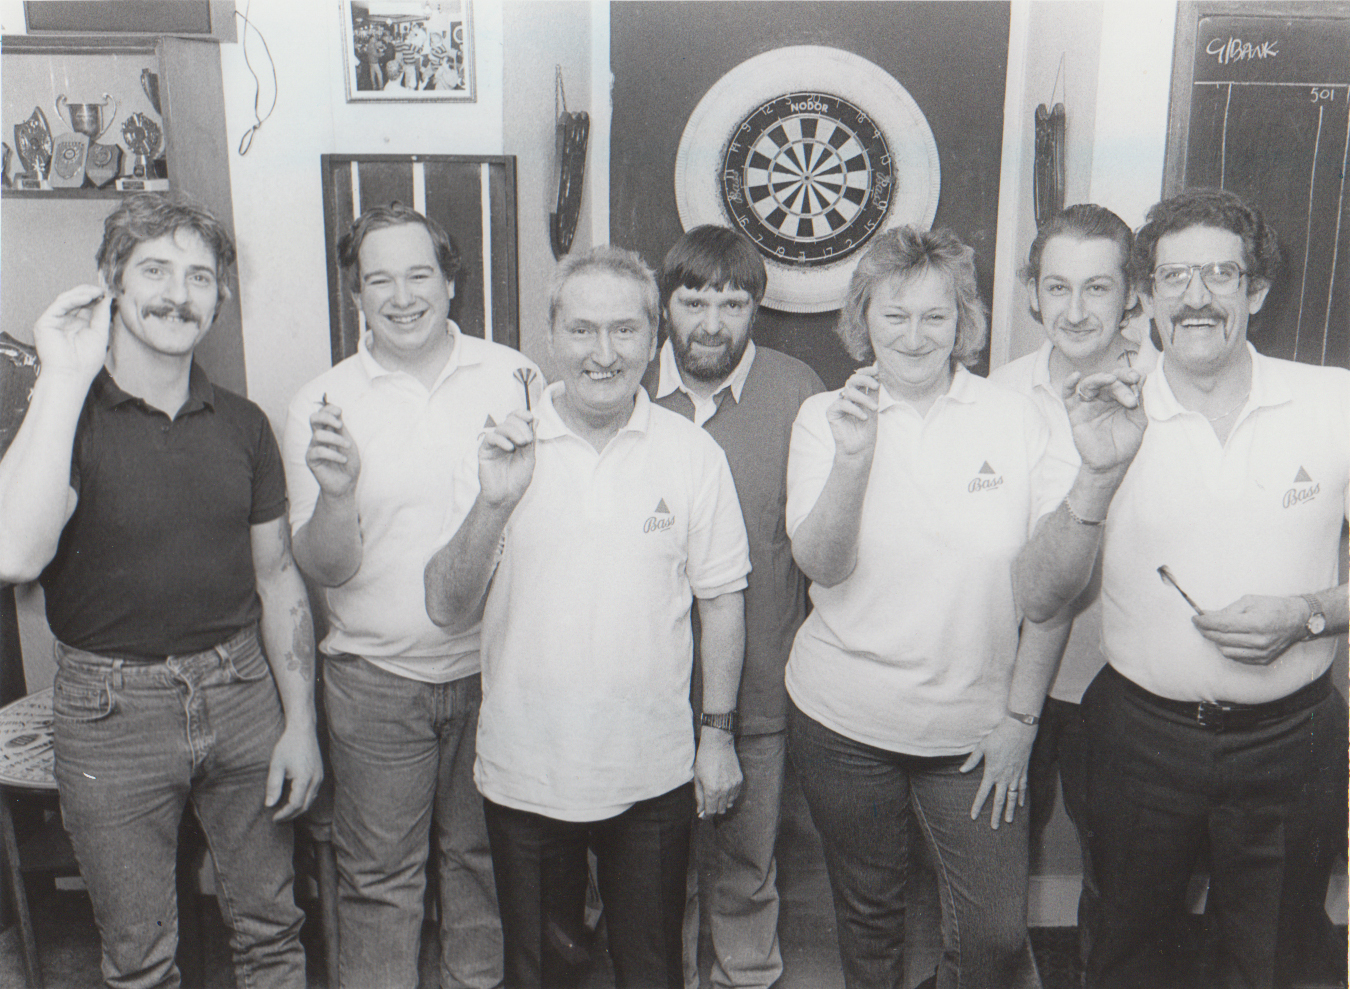 Greenbank darts team, 1991